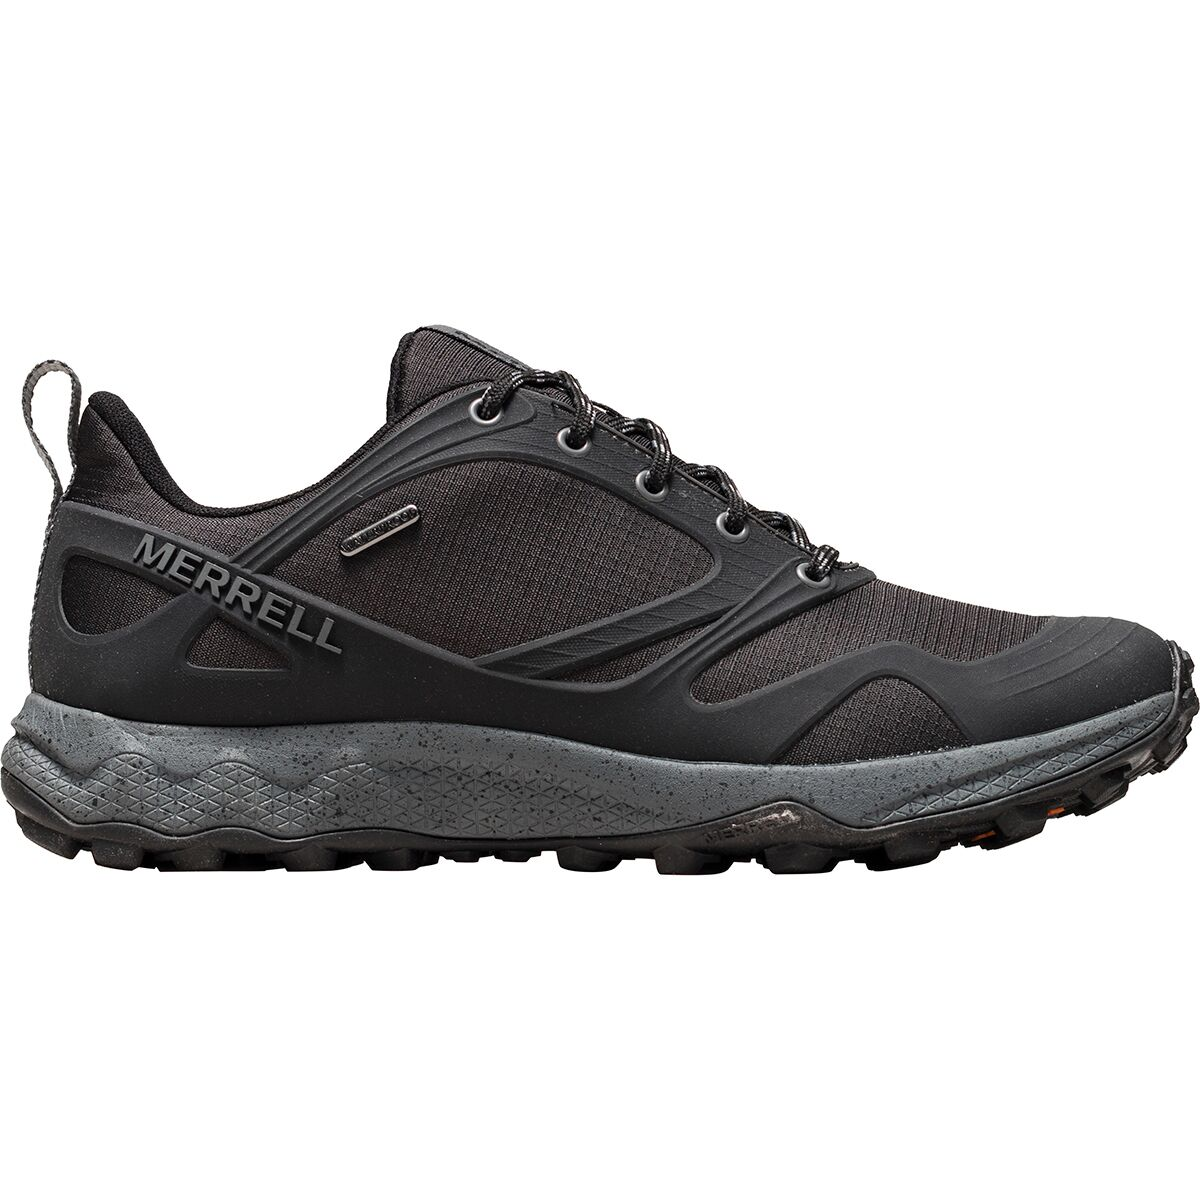 Merrell Altalight Waterproof